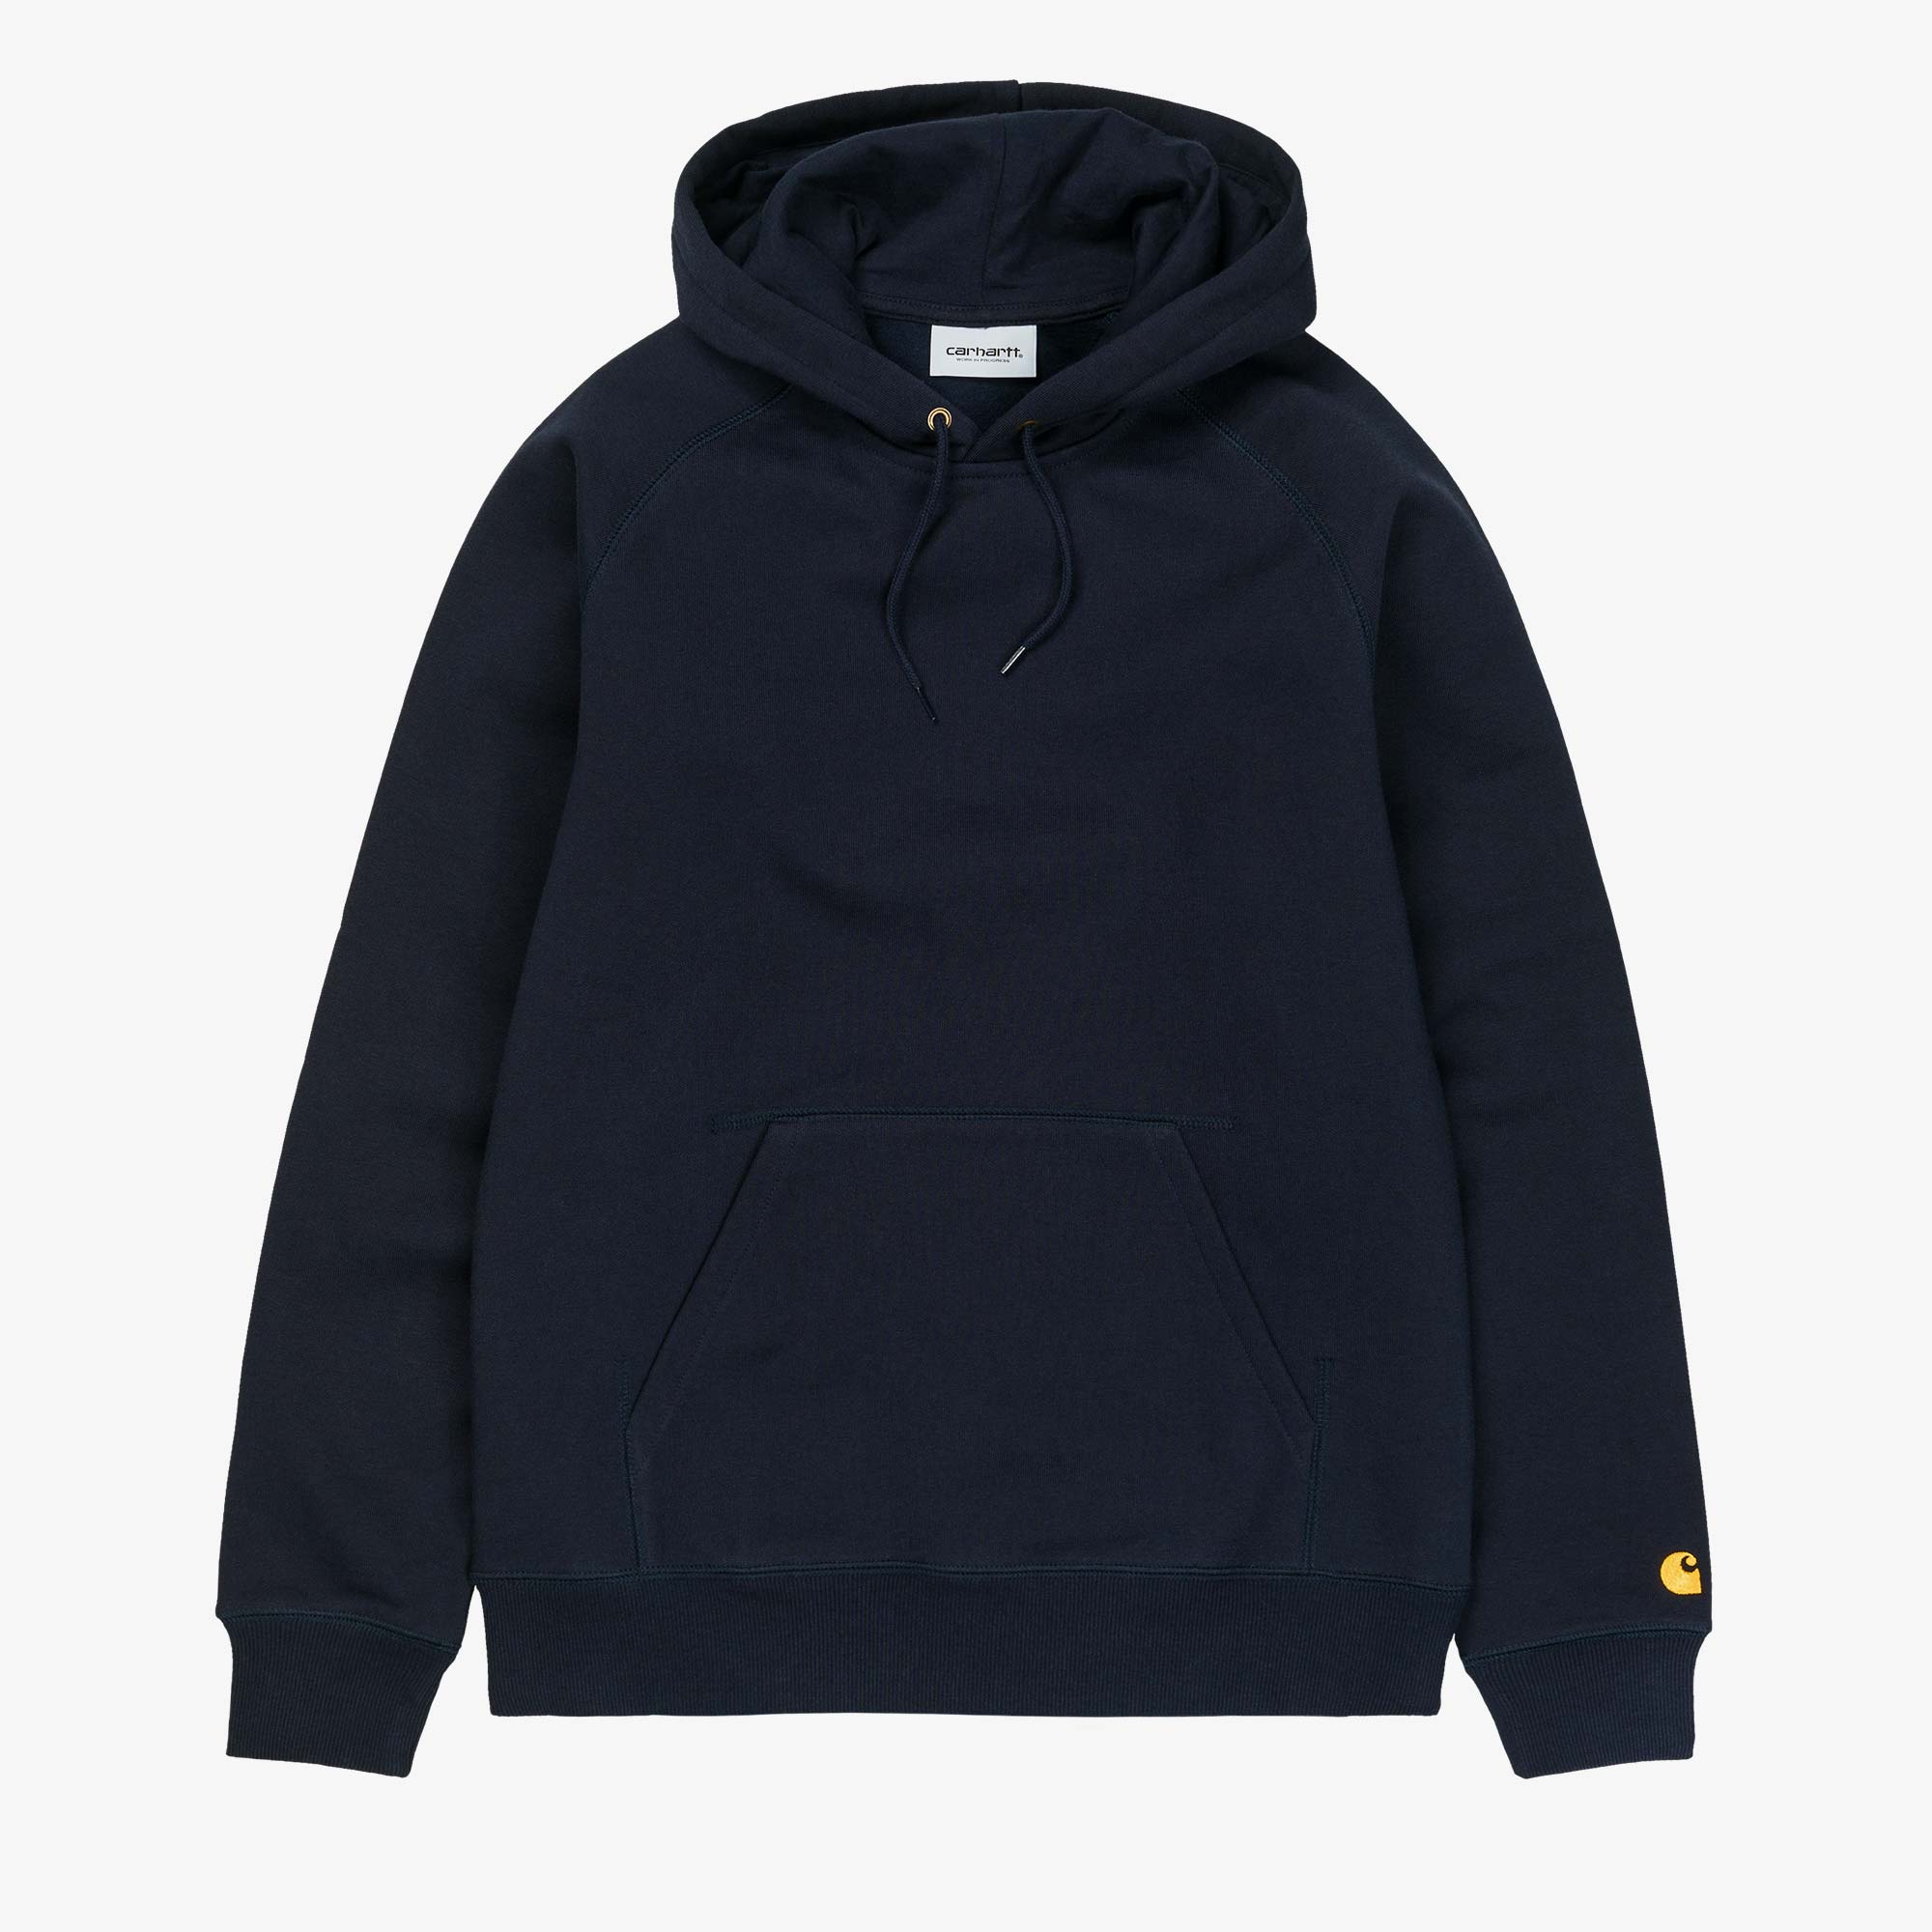 Carhartt WIP Hooded Chase Sweat - Dark Navy / Gold 1